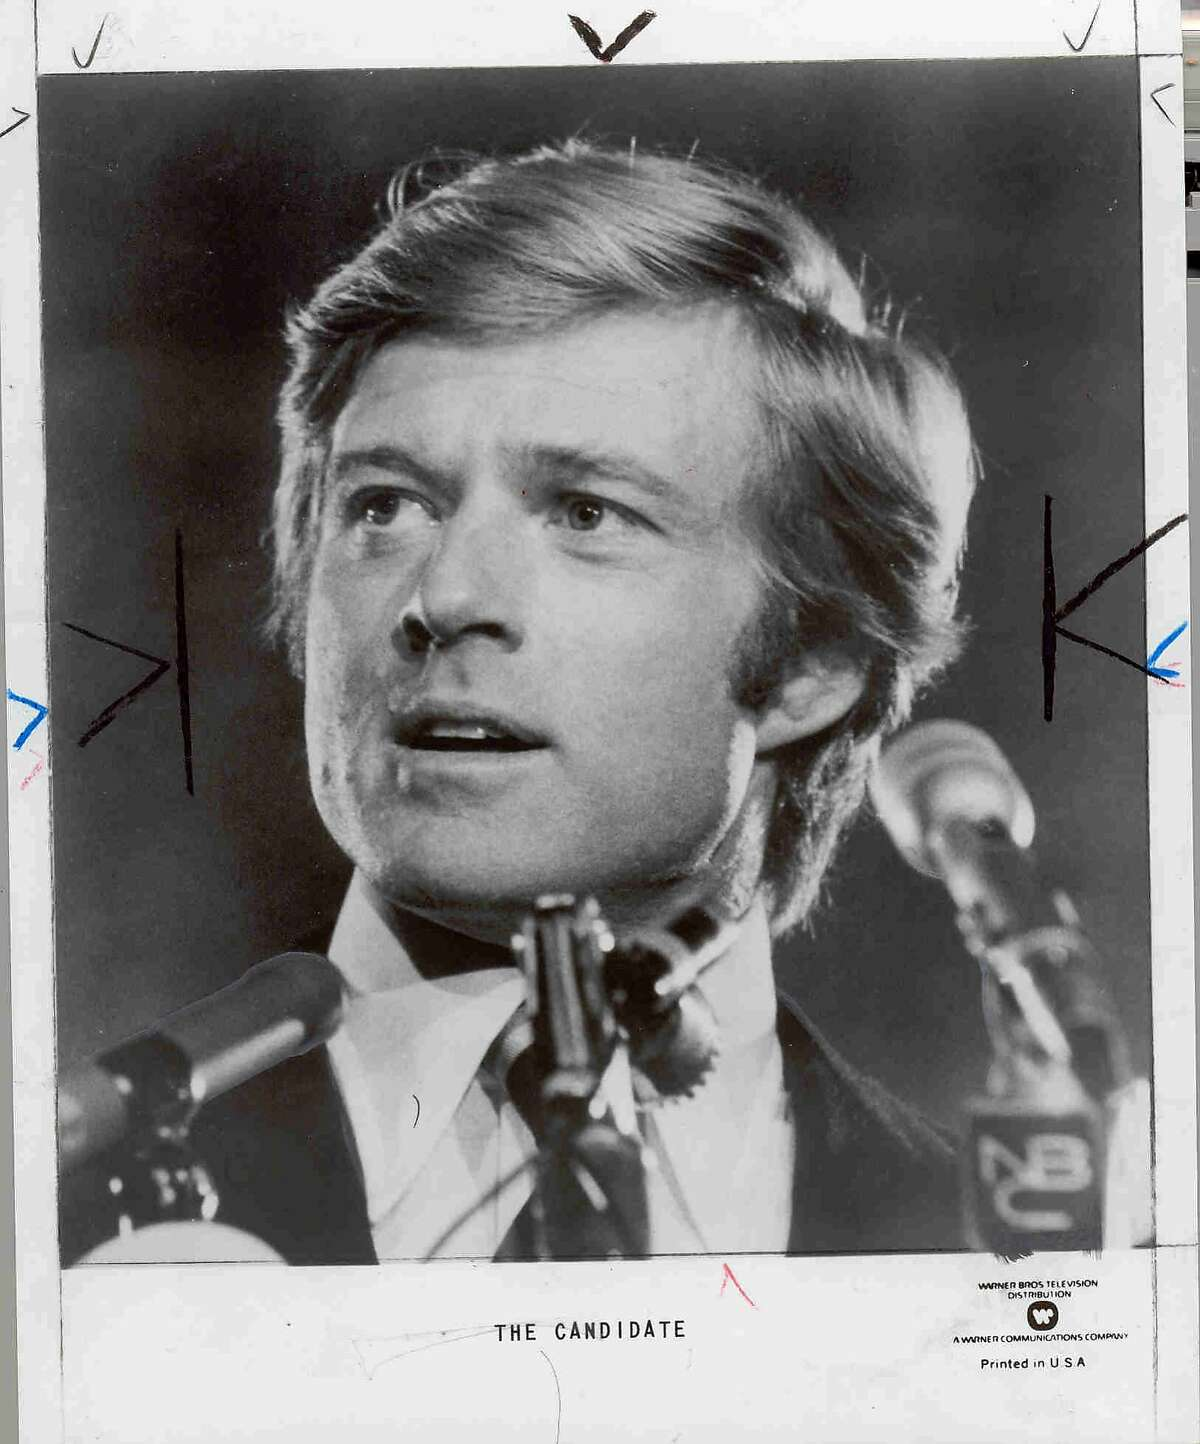 Robert Redford in The Candidate